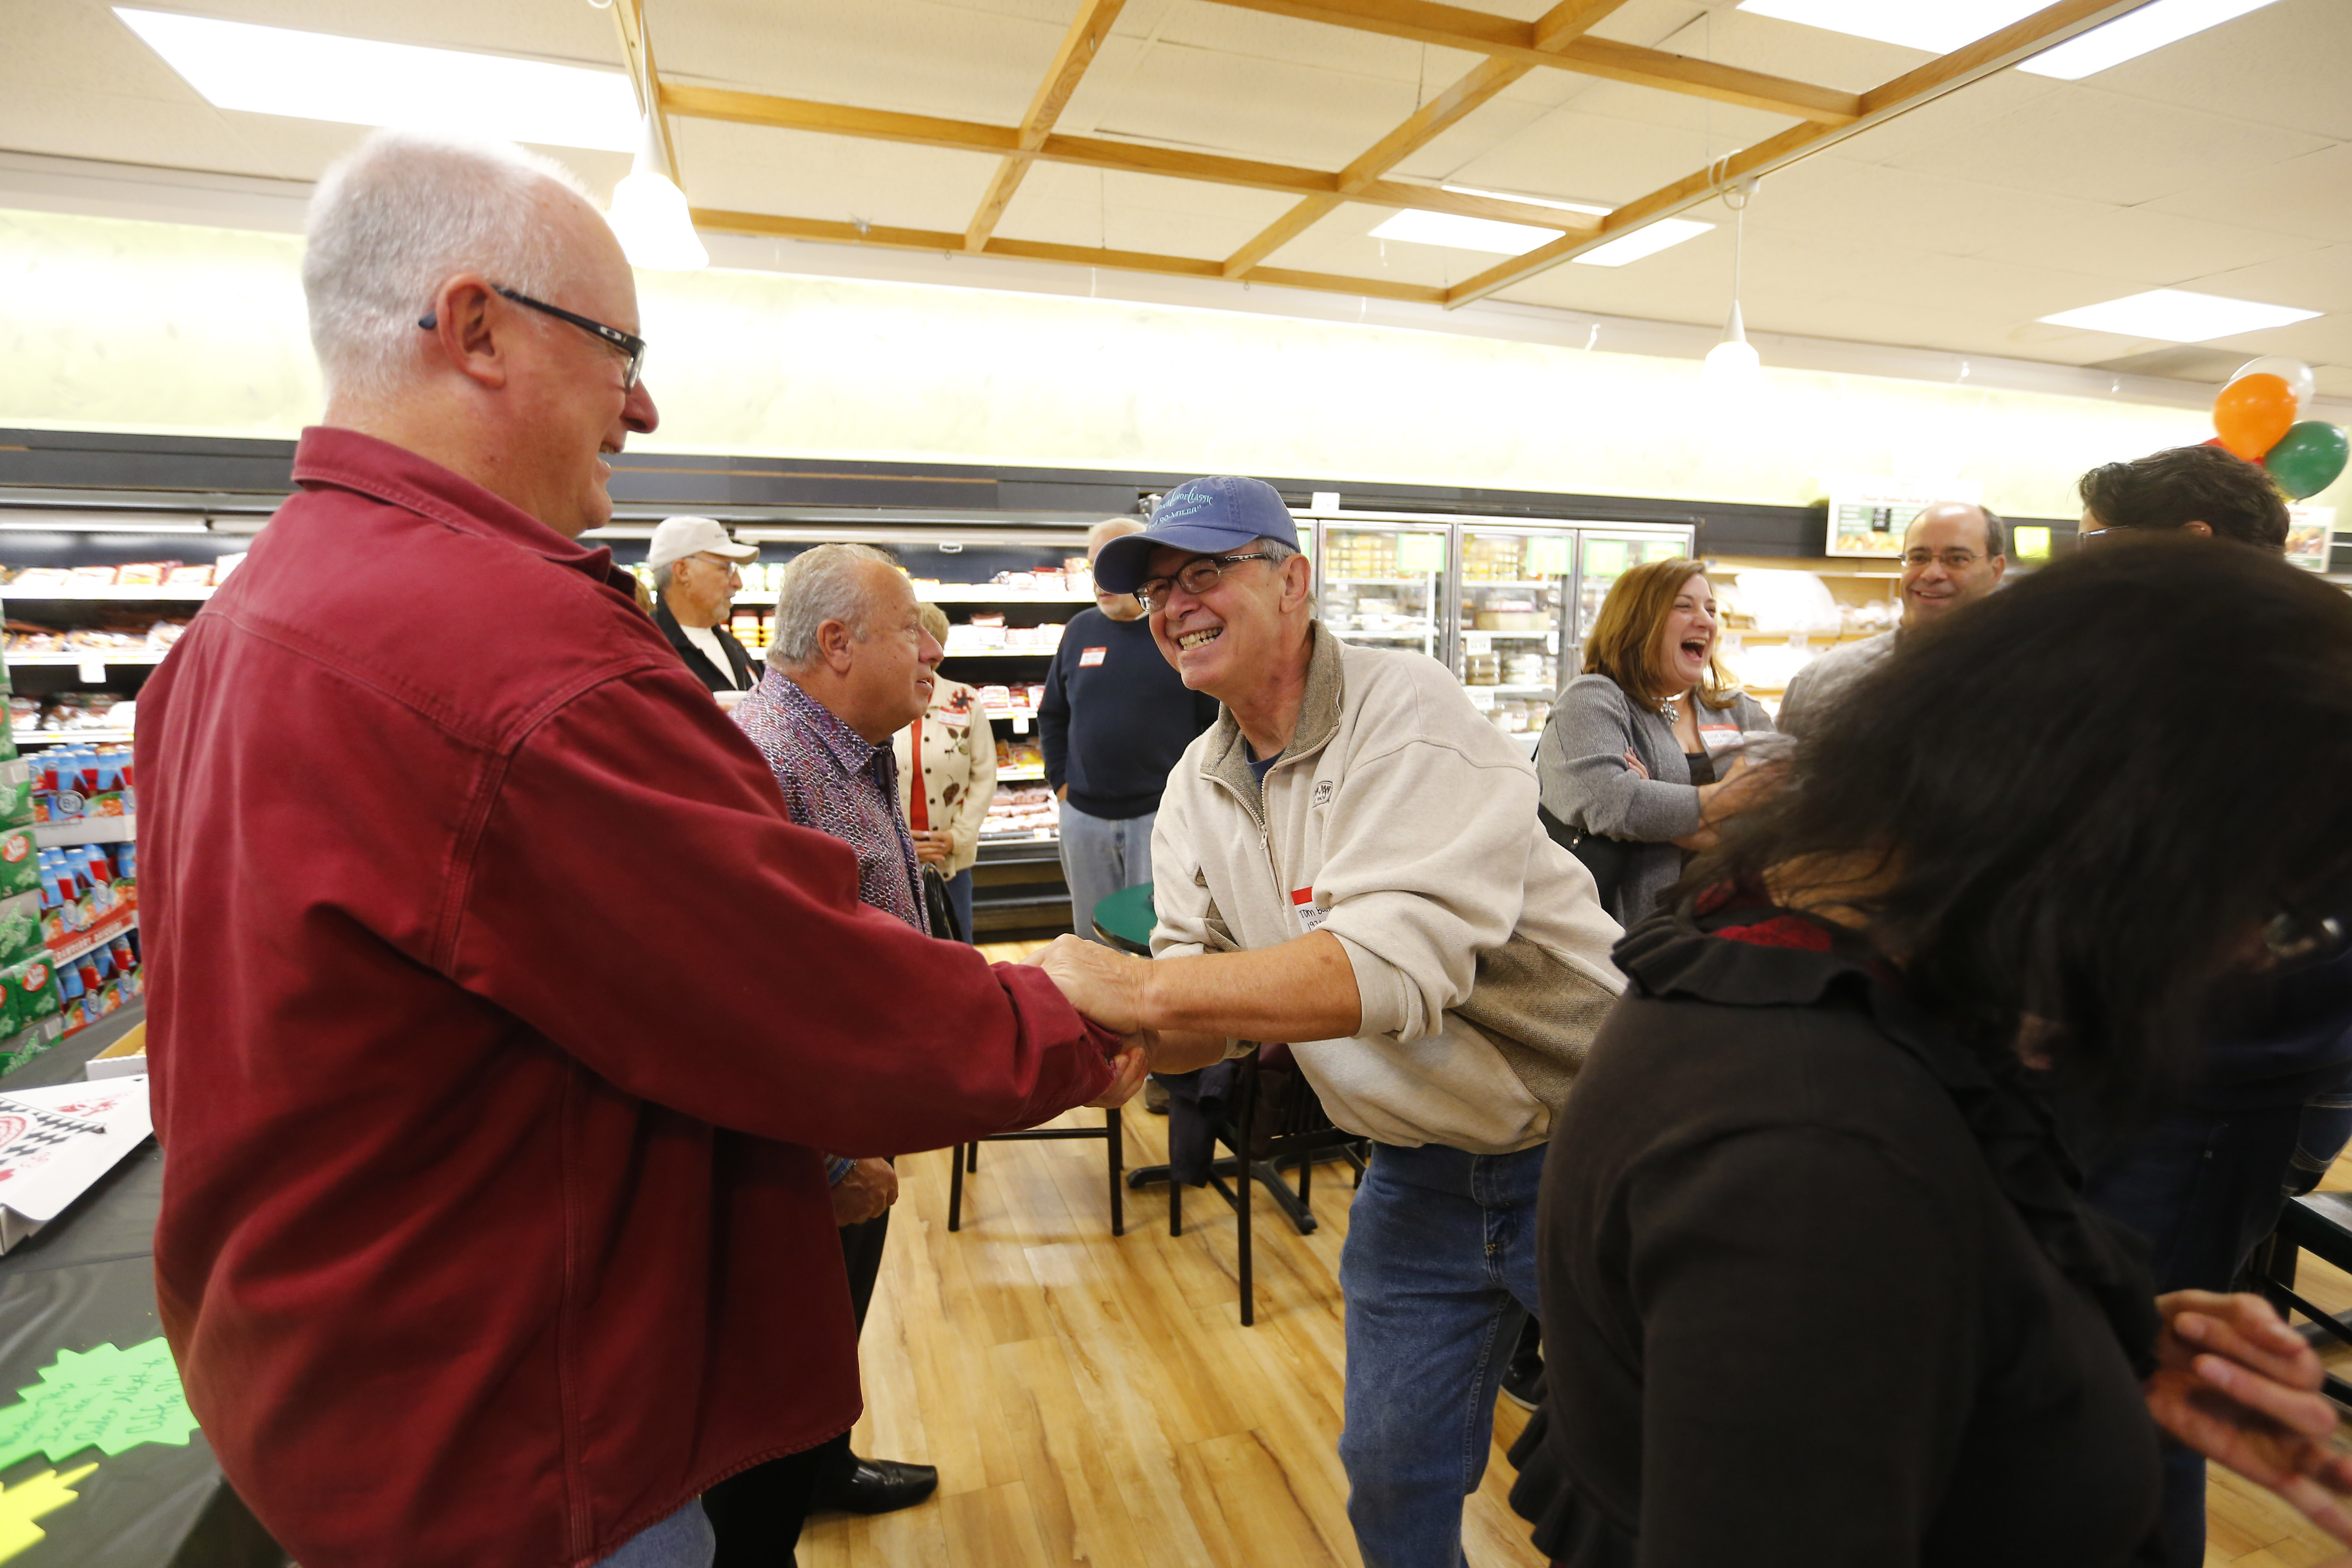 Former Budwey's employees Rick Reimer, left, shakes hands with Tom Ballou, right, during a reunion of former employees at the store in North Tonawanda on Saturday, Oct. 30, 2016. (Mark Mulville/Buffalo News)